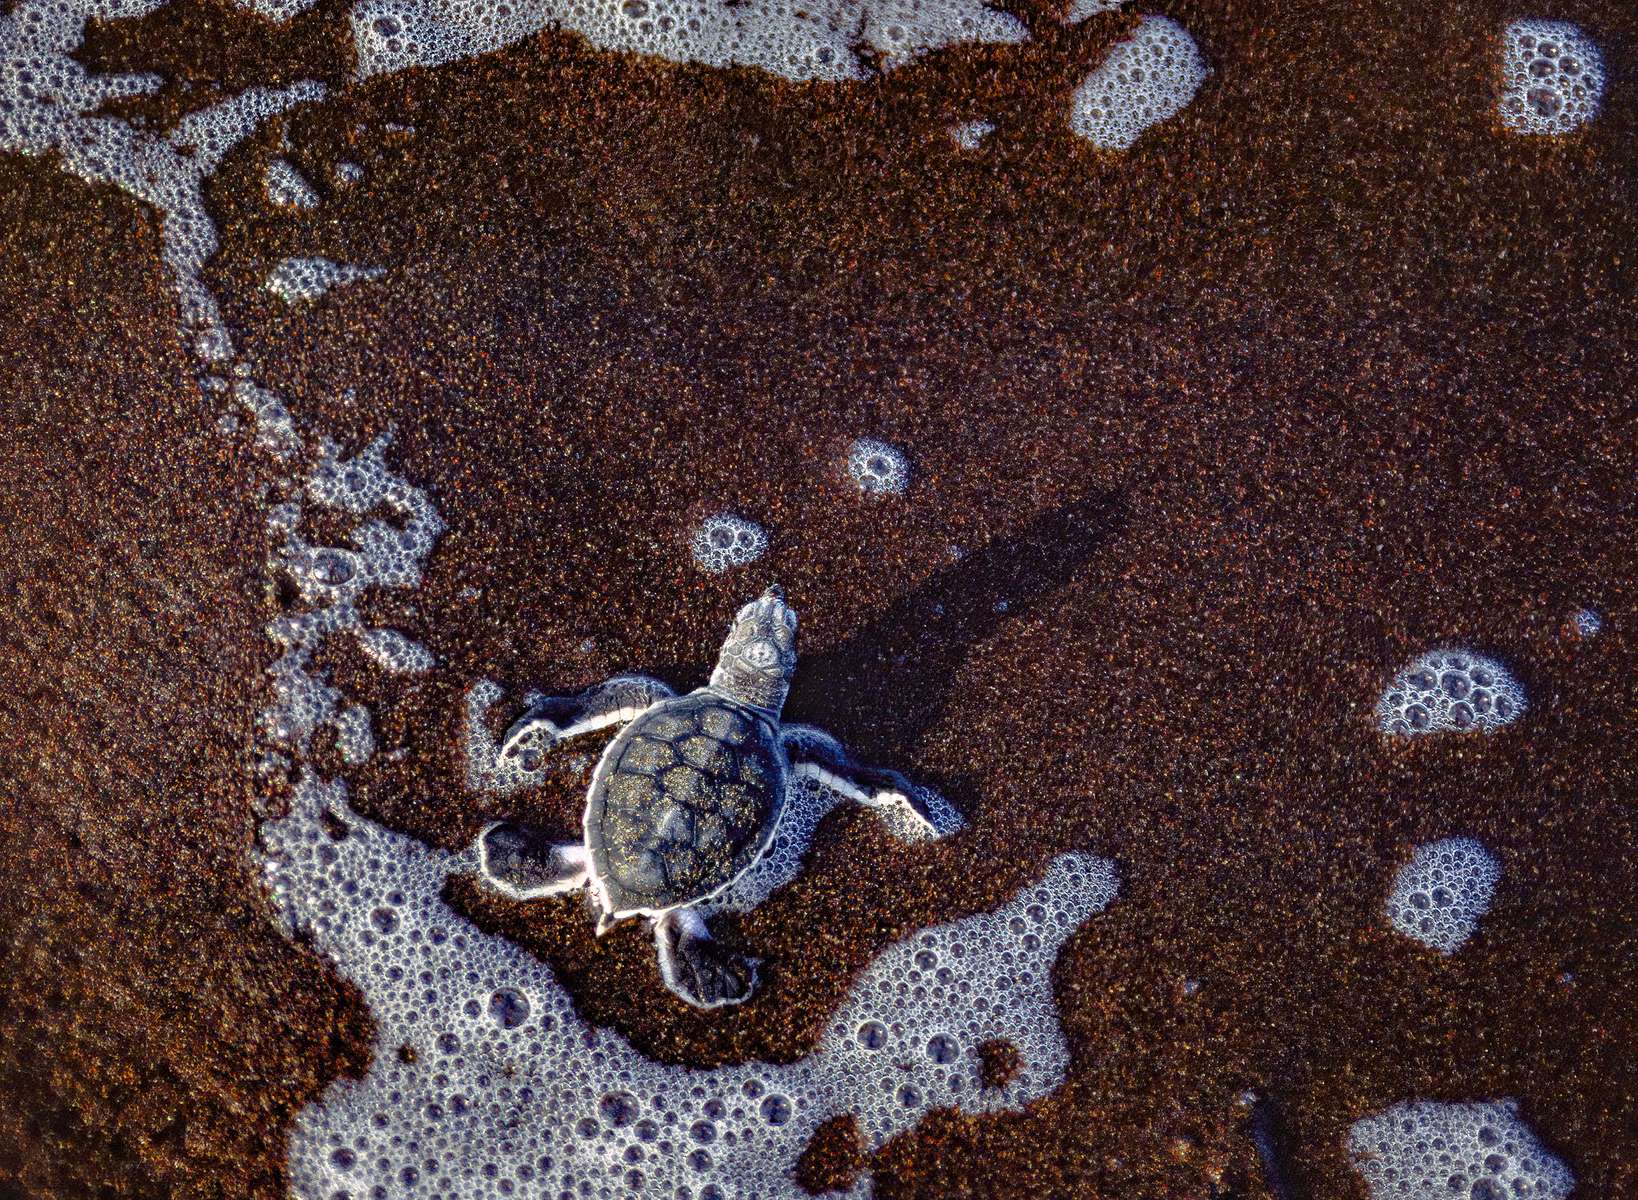 A green sea turtle hatchling makes it to the Caribbean Sea after its' nest was attacked by wild dogs. Tortugero, Costa Rica